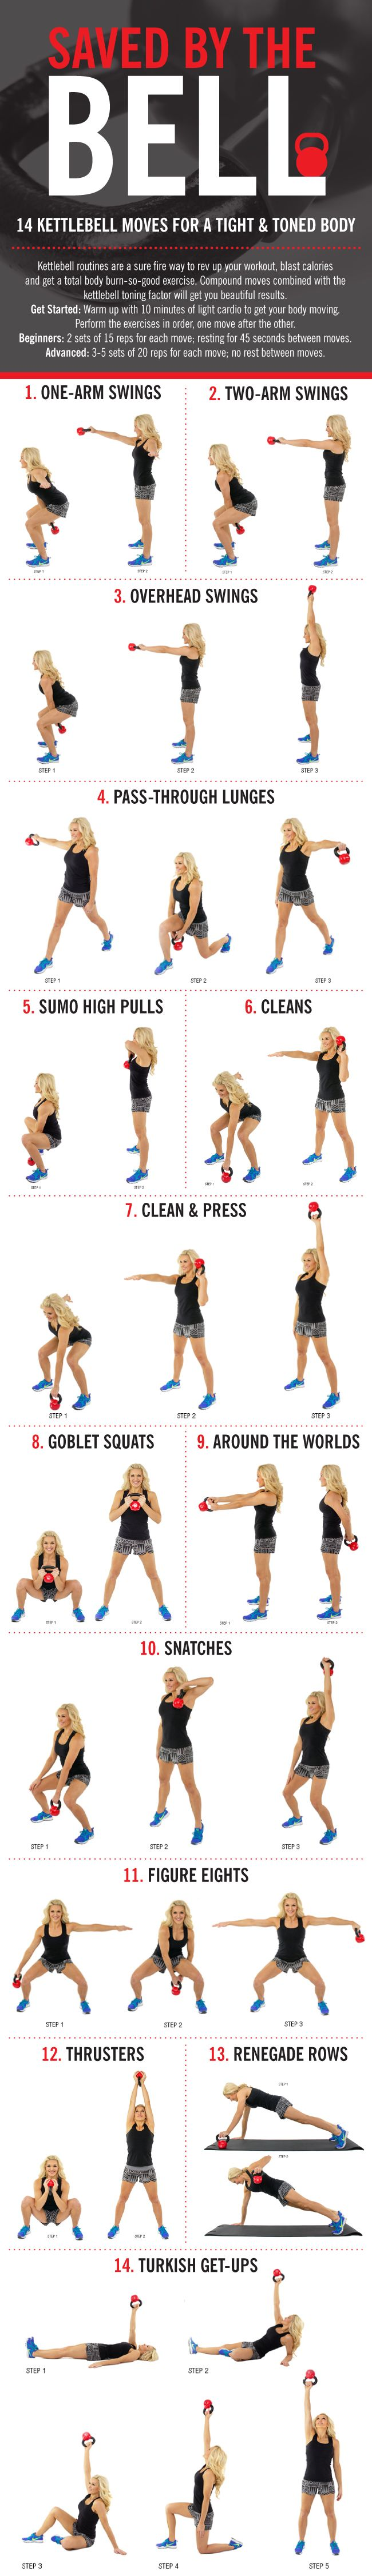 skinny mom kettlebell workout with 14 kettlebell exercises infographic